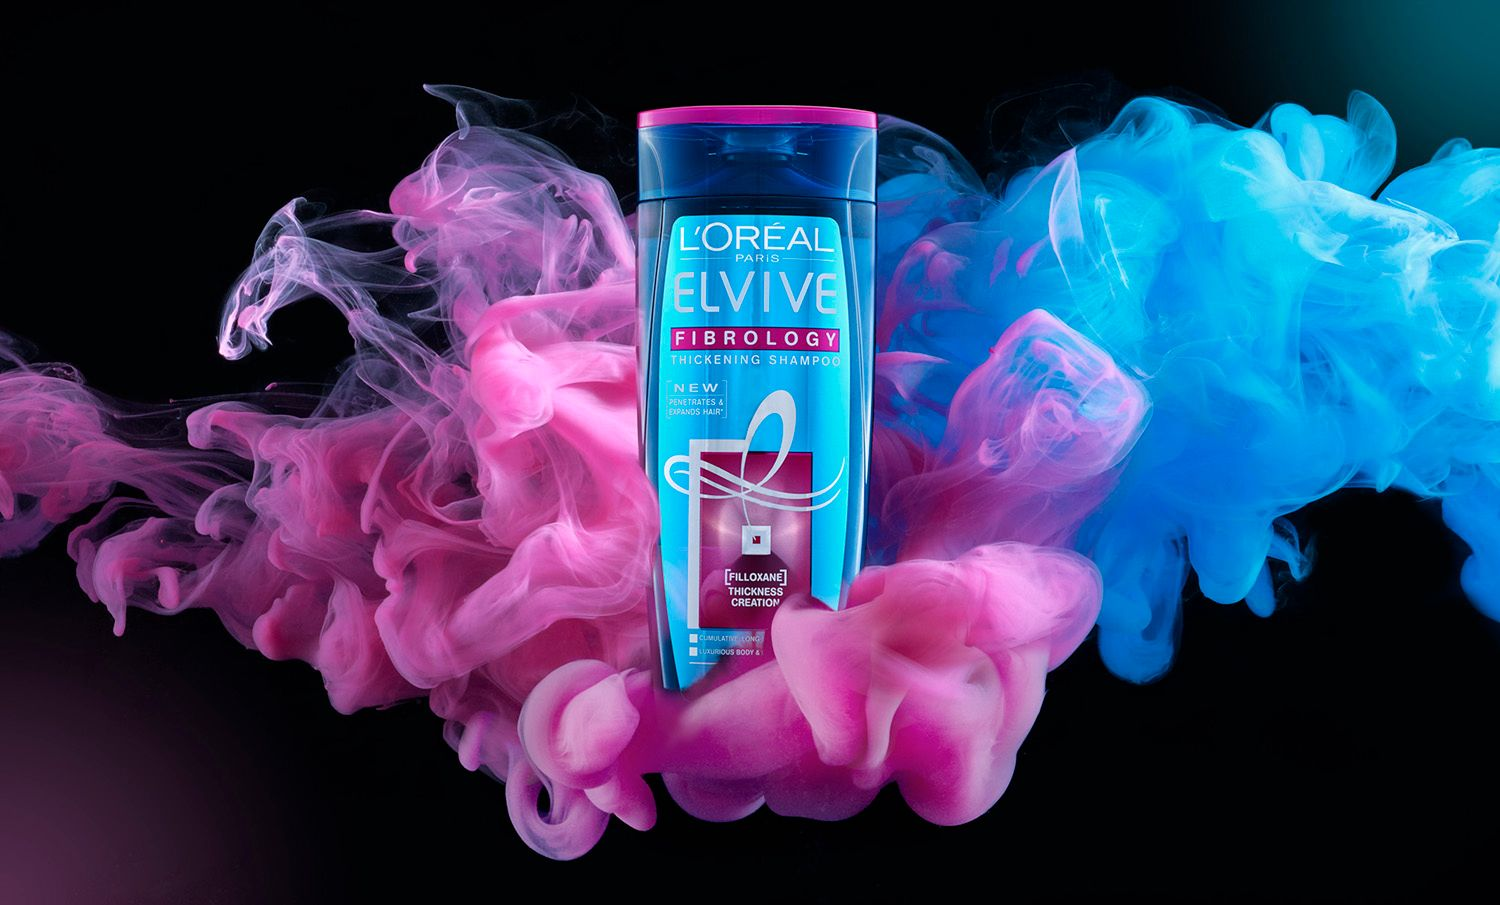 L'Oreal beauty campaign